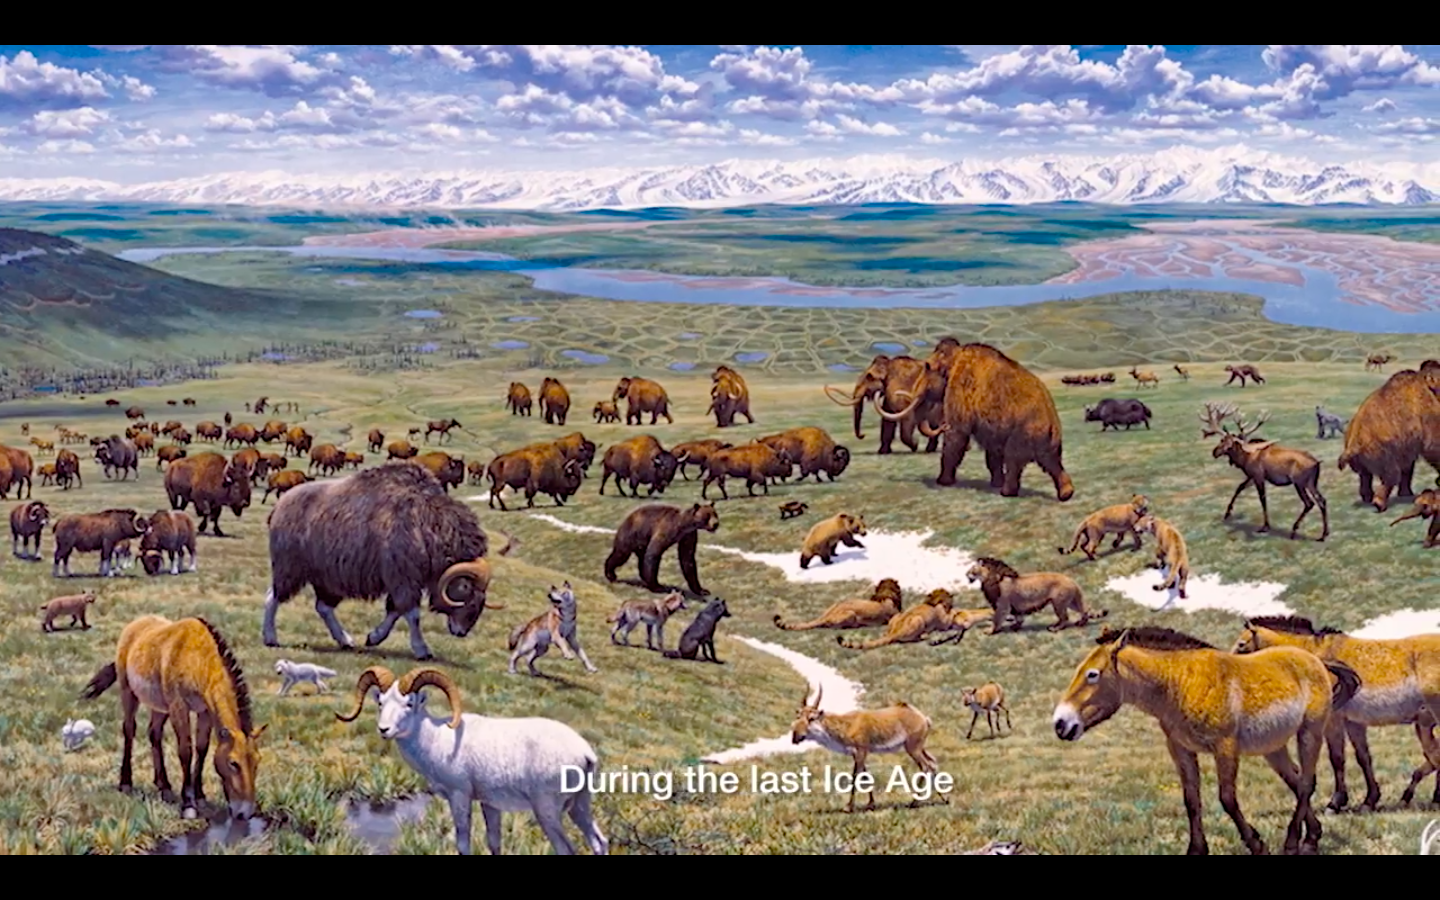 Video: Siberia Recreates Prehistoric, Ice Age Ecosystem, To Be Complete With Woolly Mammoths